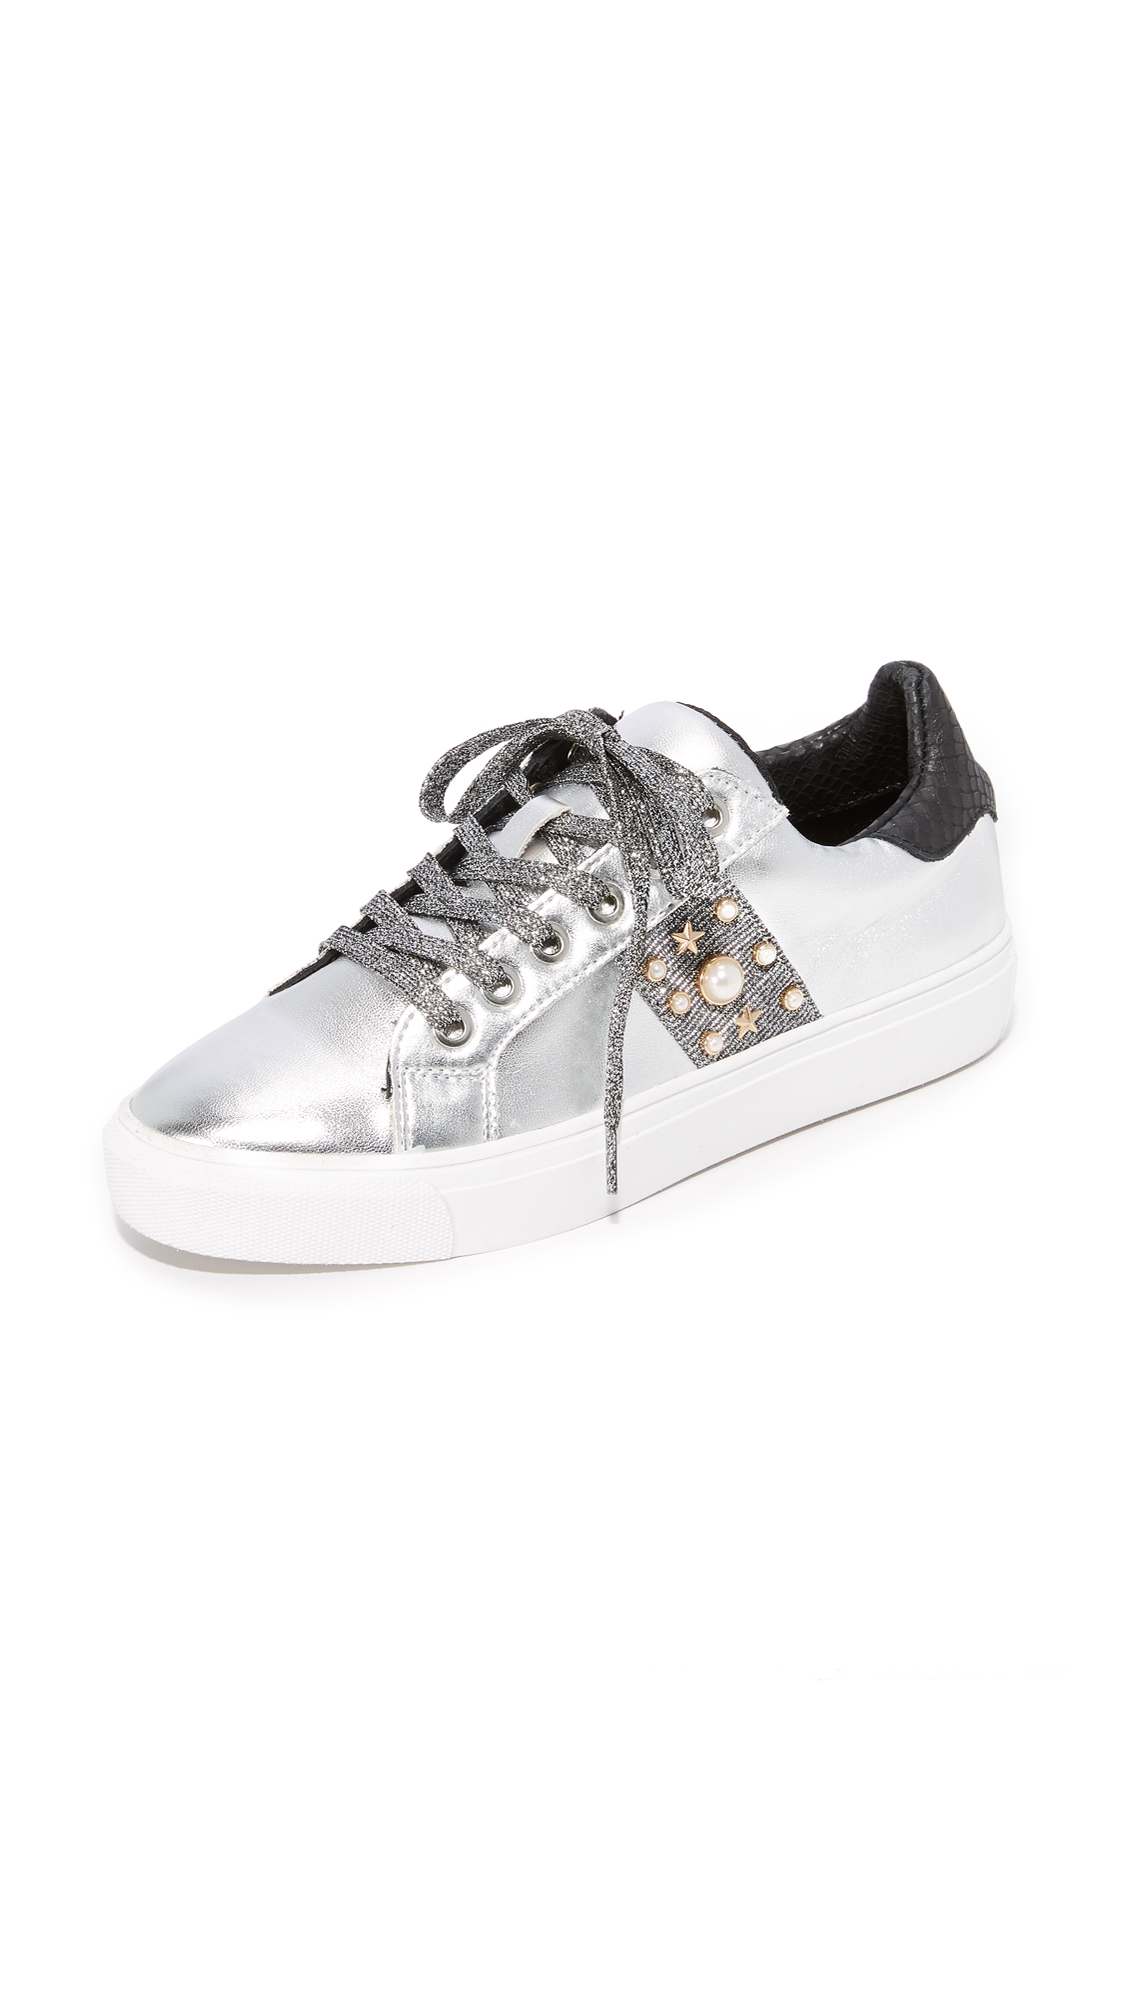 Steven Cory Classic Sneakers - Silver